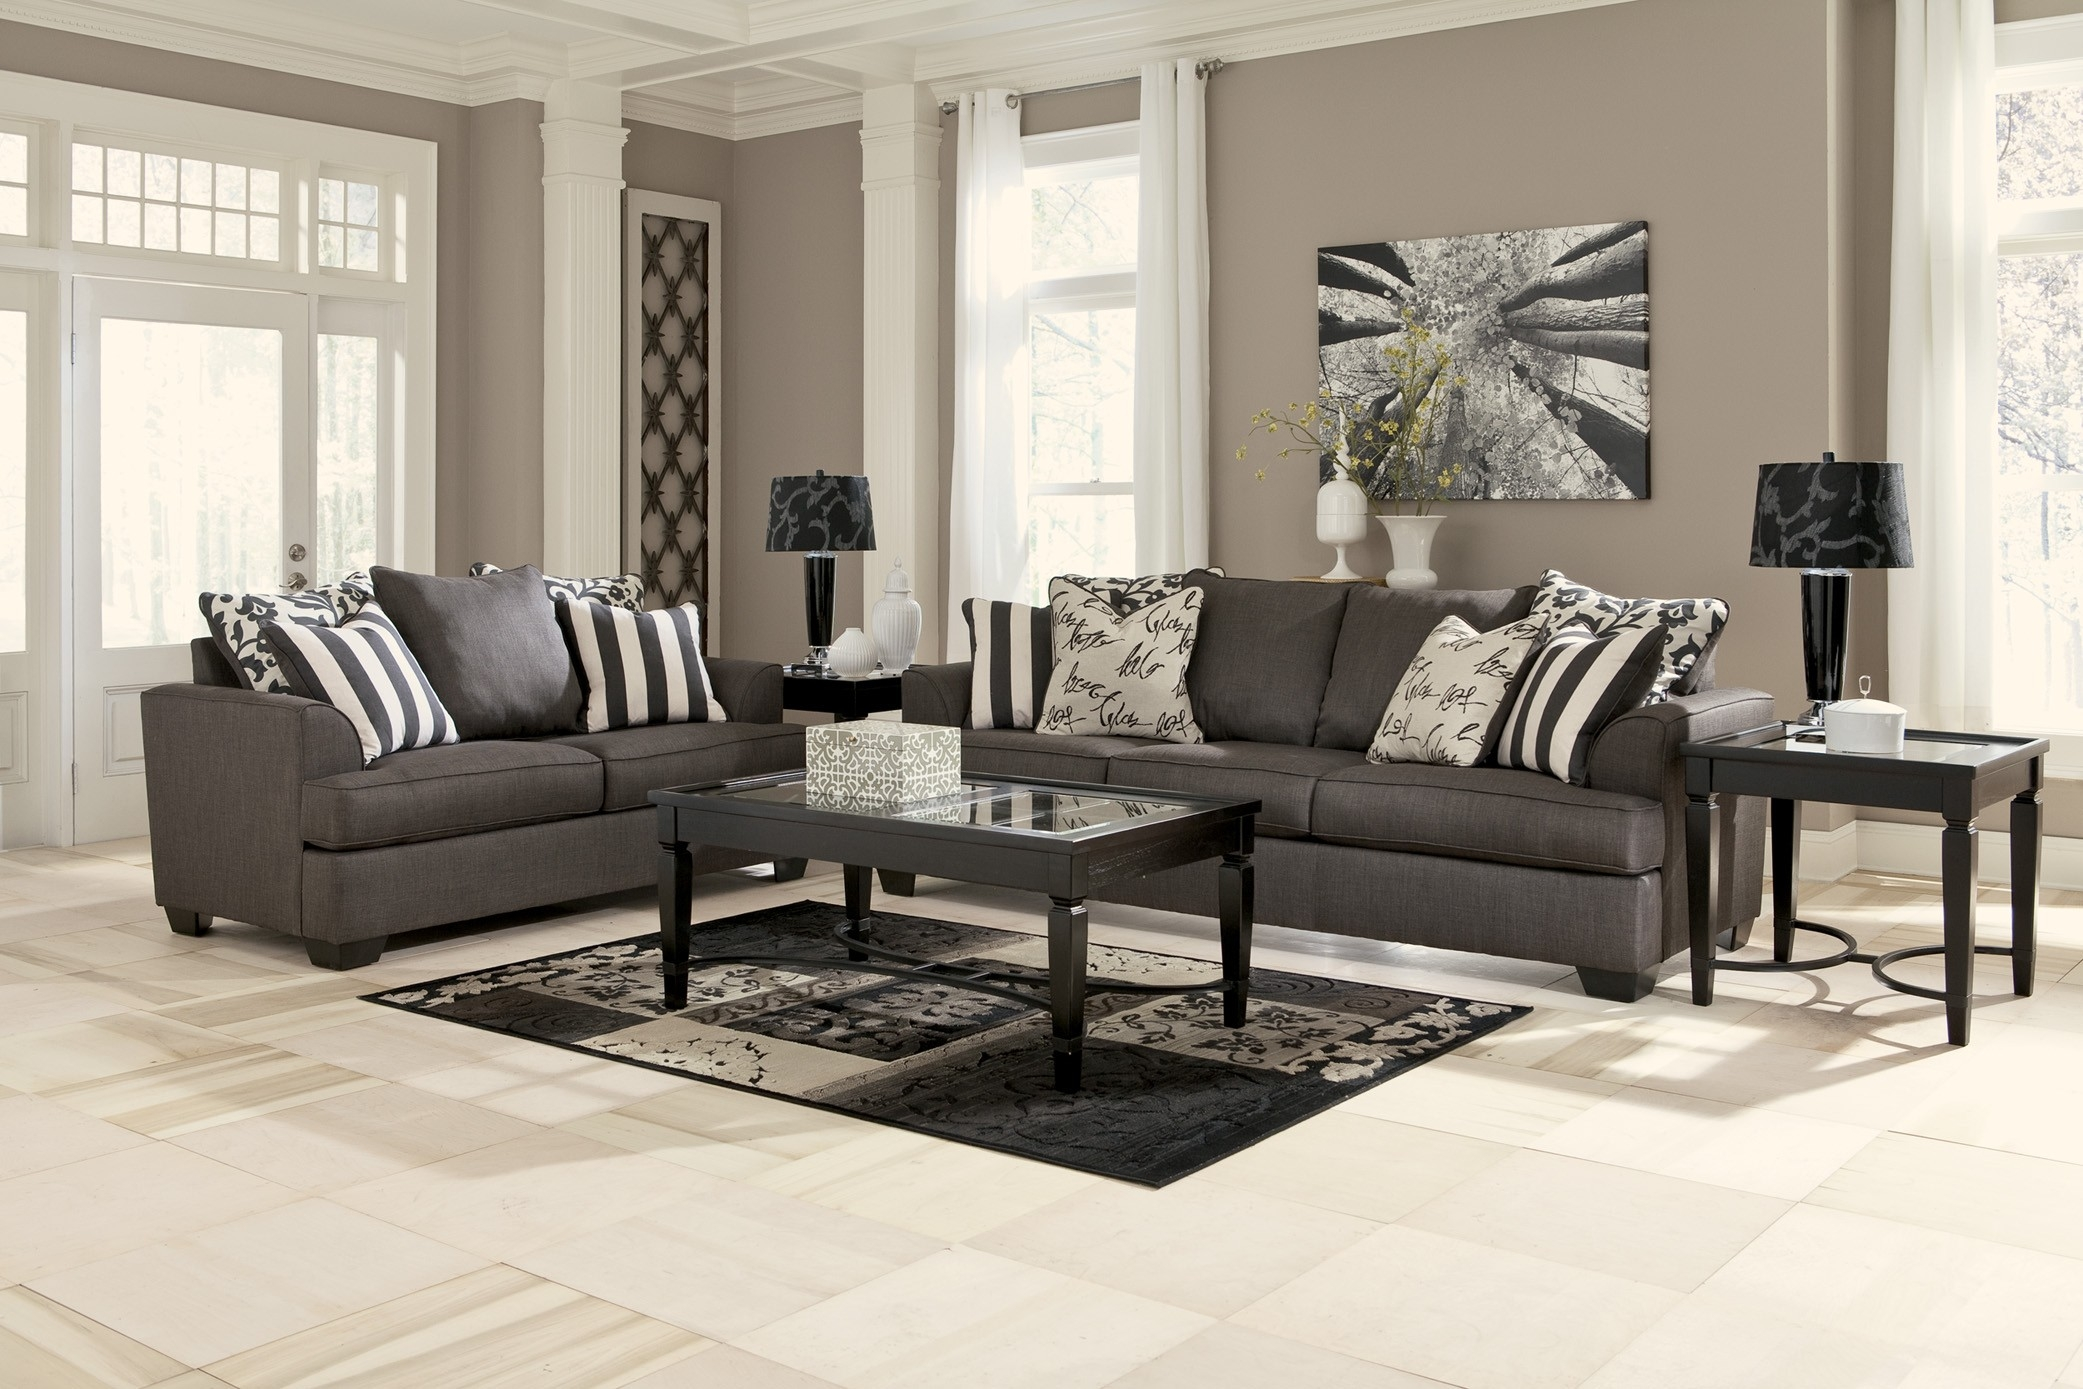 Charcoal Grey Sofa Decorating Ideas Best Ideas About Charcoal Pertaining To Charcoal Grey Sofas (Image 6 of 15)